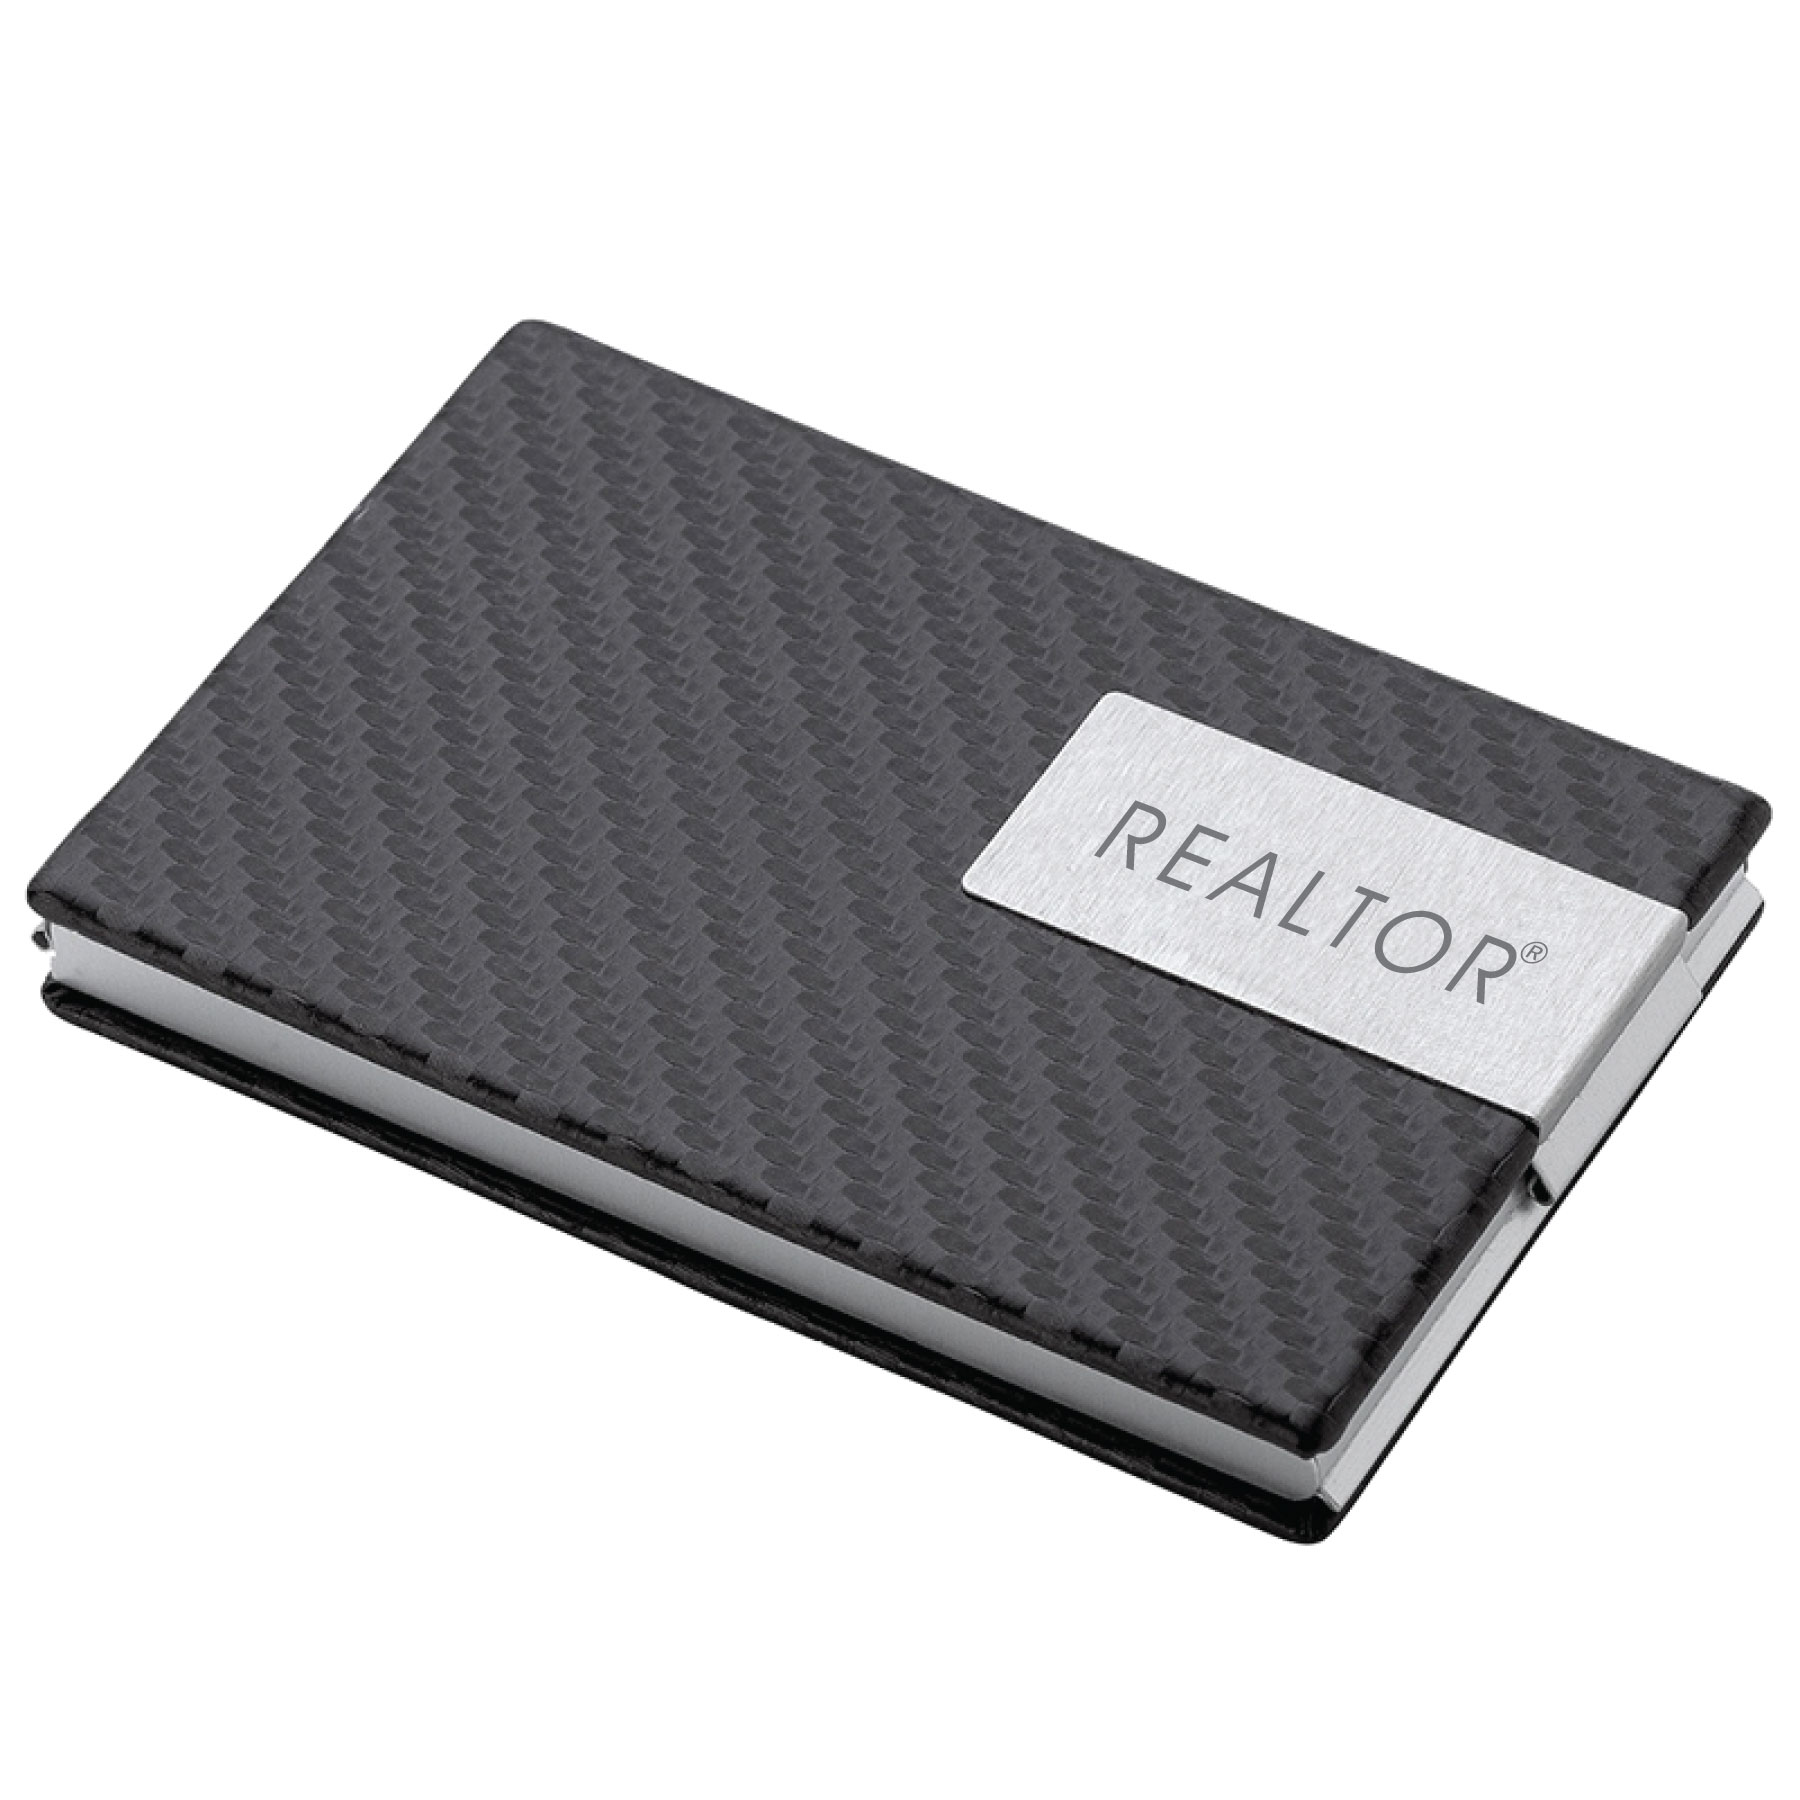 Realtor carbon mesh business card case rts4676 carbon mesh business card case rts4676 colourmoves